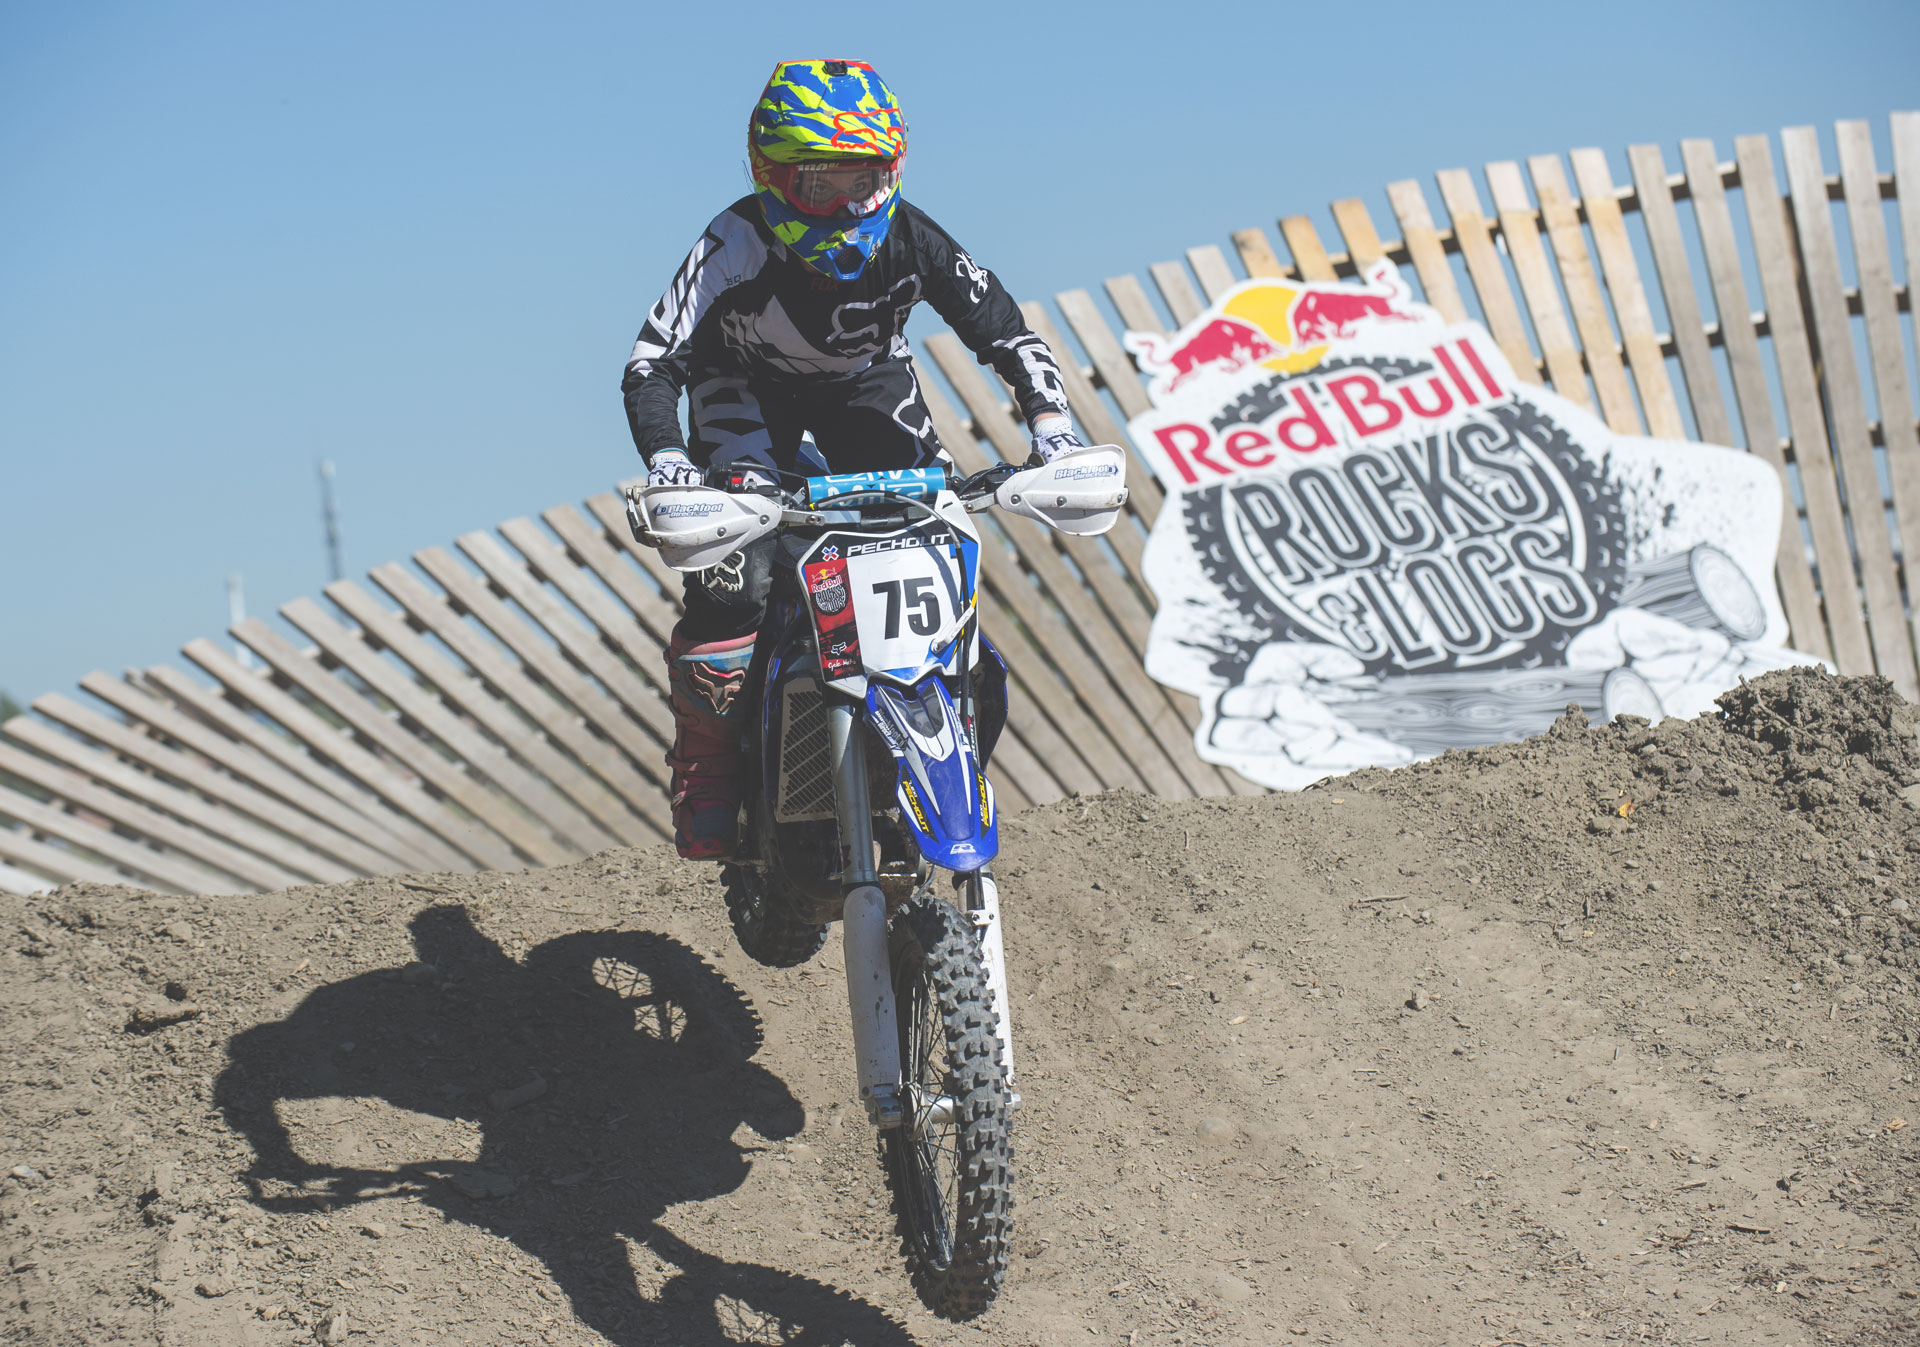 Local competitors take to the course at Red Bull Outliers.